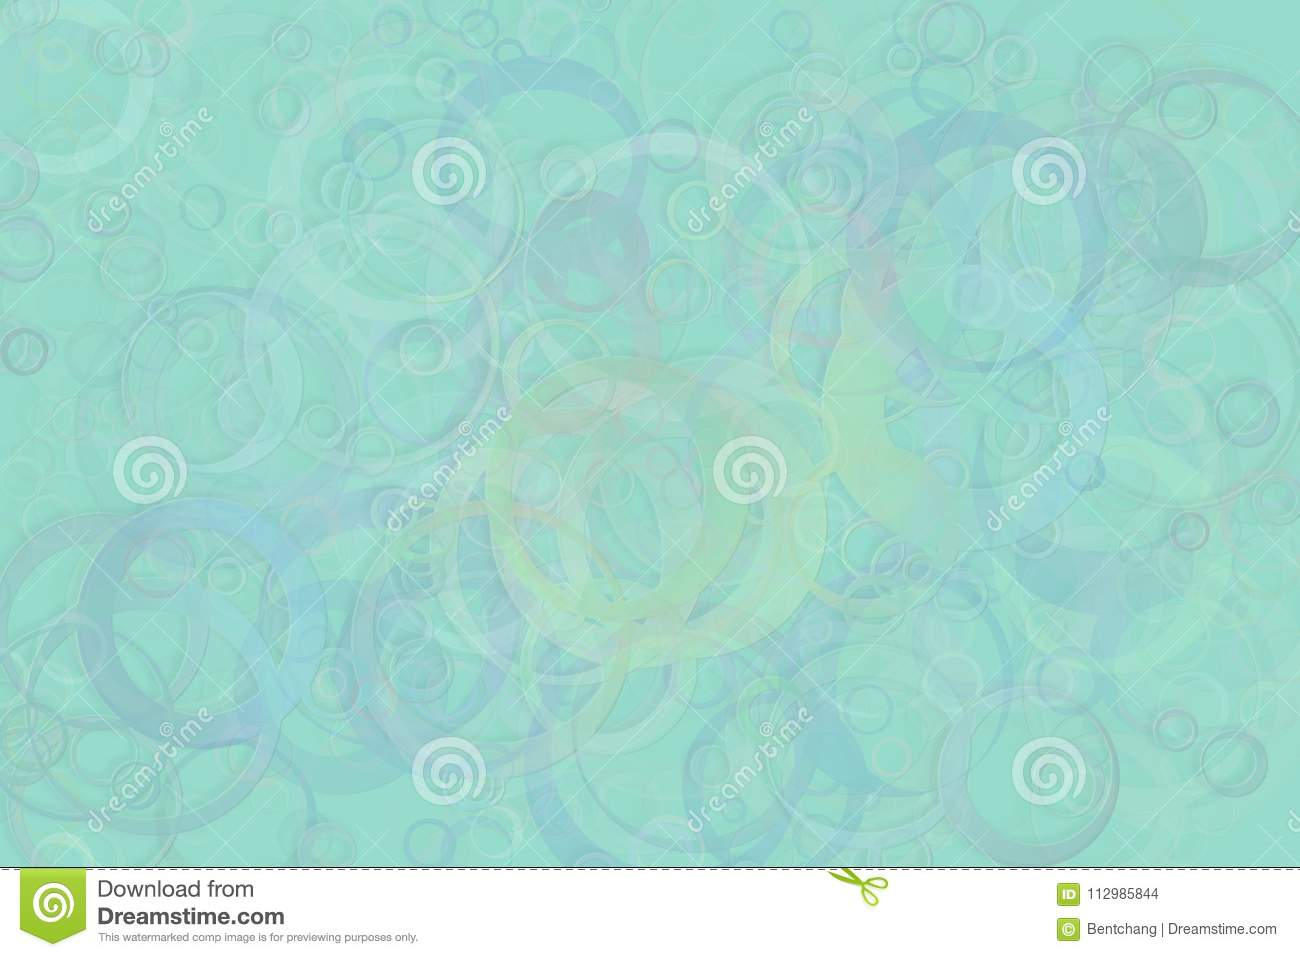 Abstract shape generative design art background. Pattern, old, drawing, painting & graphic.